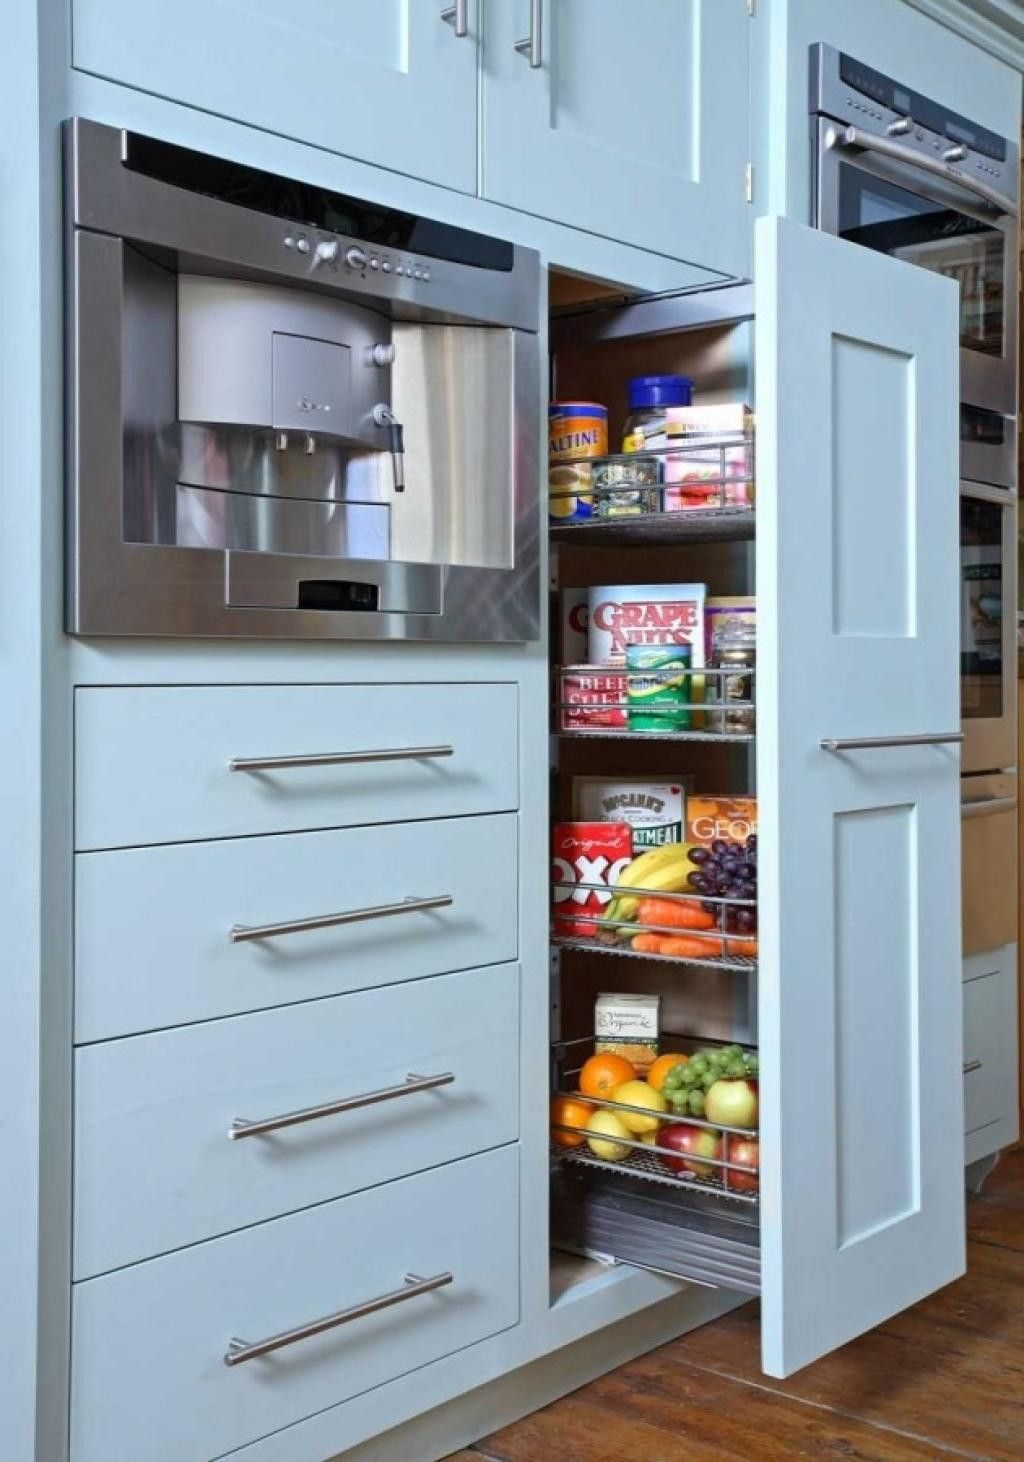 70+ Kitchen Cabinets Inside Design - Small Kitchen island Ideas with ...